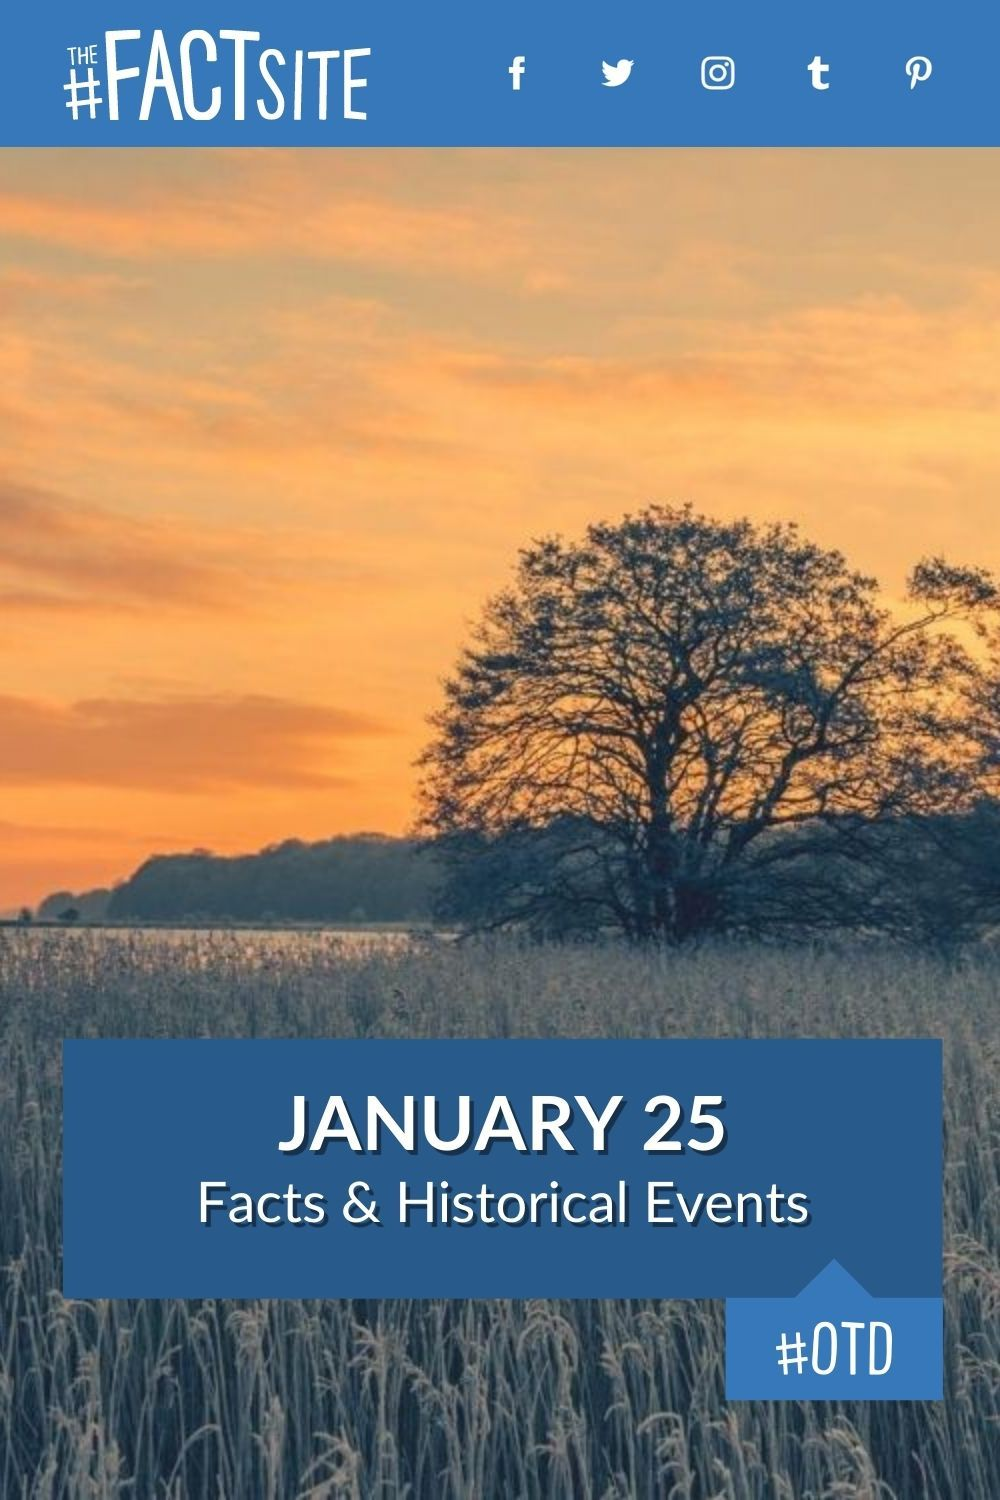 Facts & Historic Events That Happened on January 25